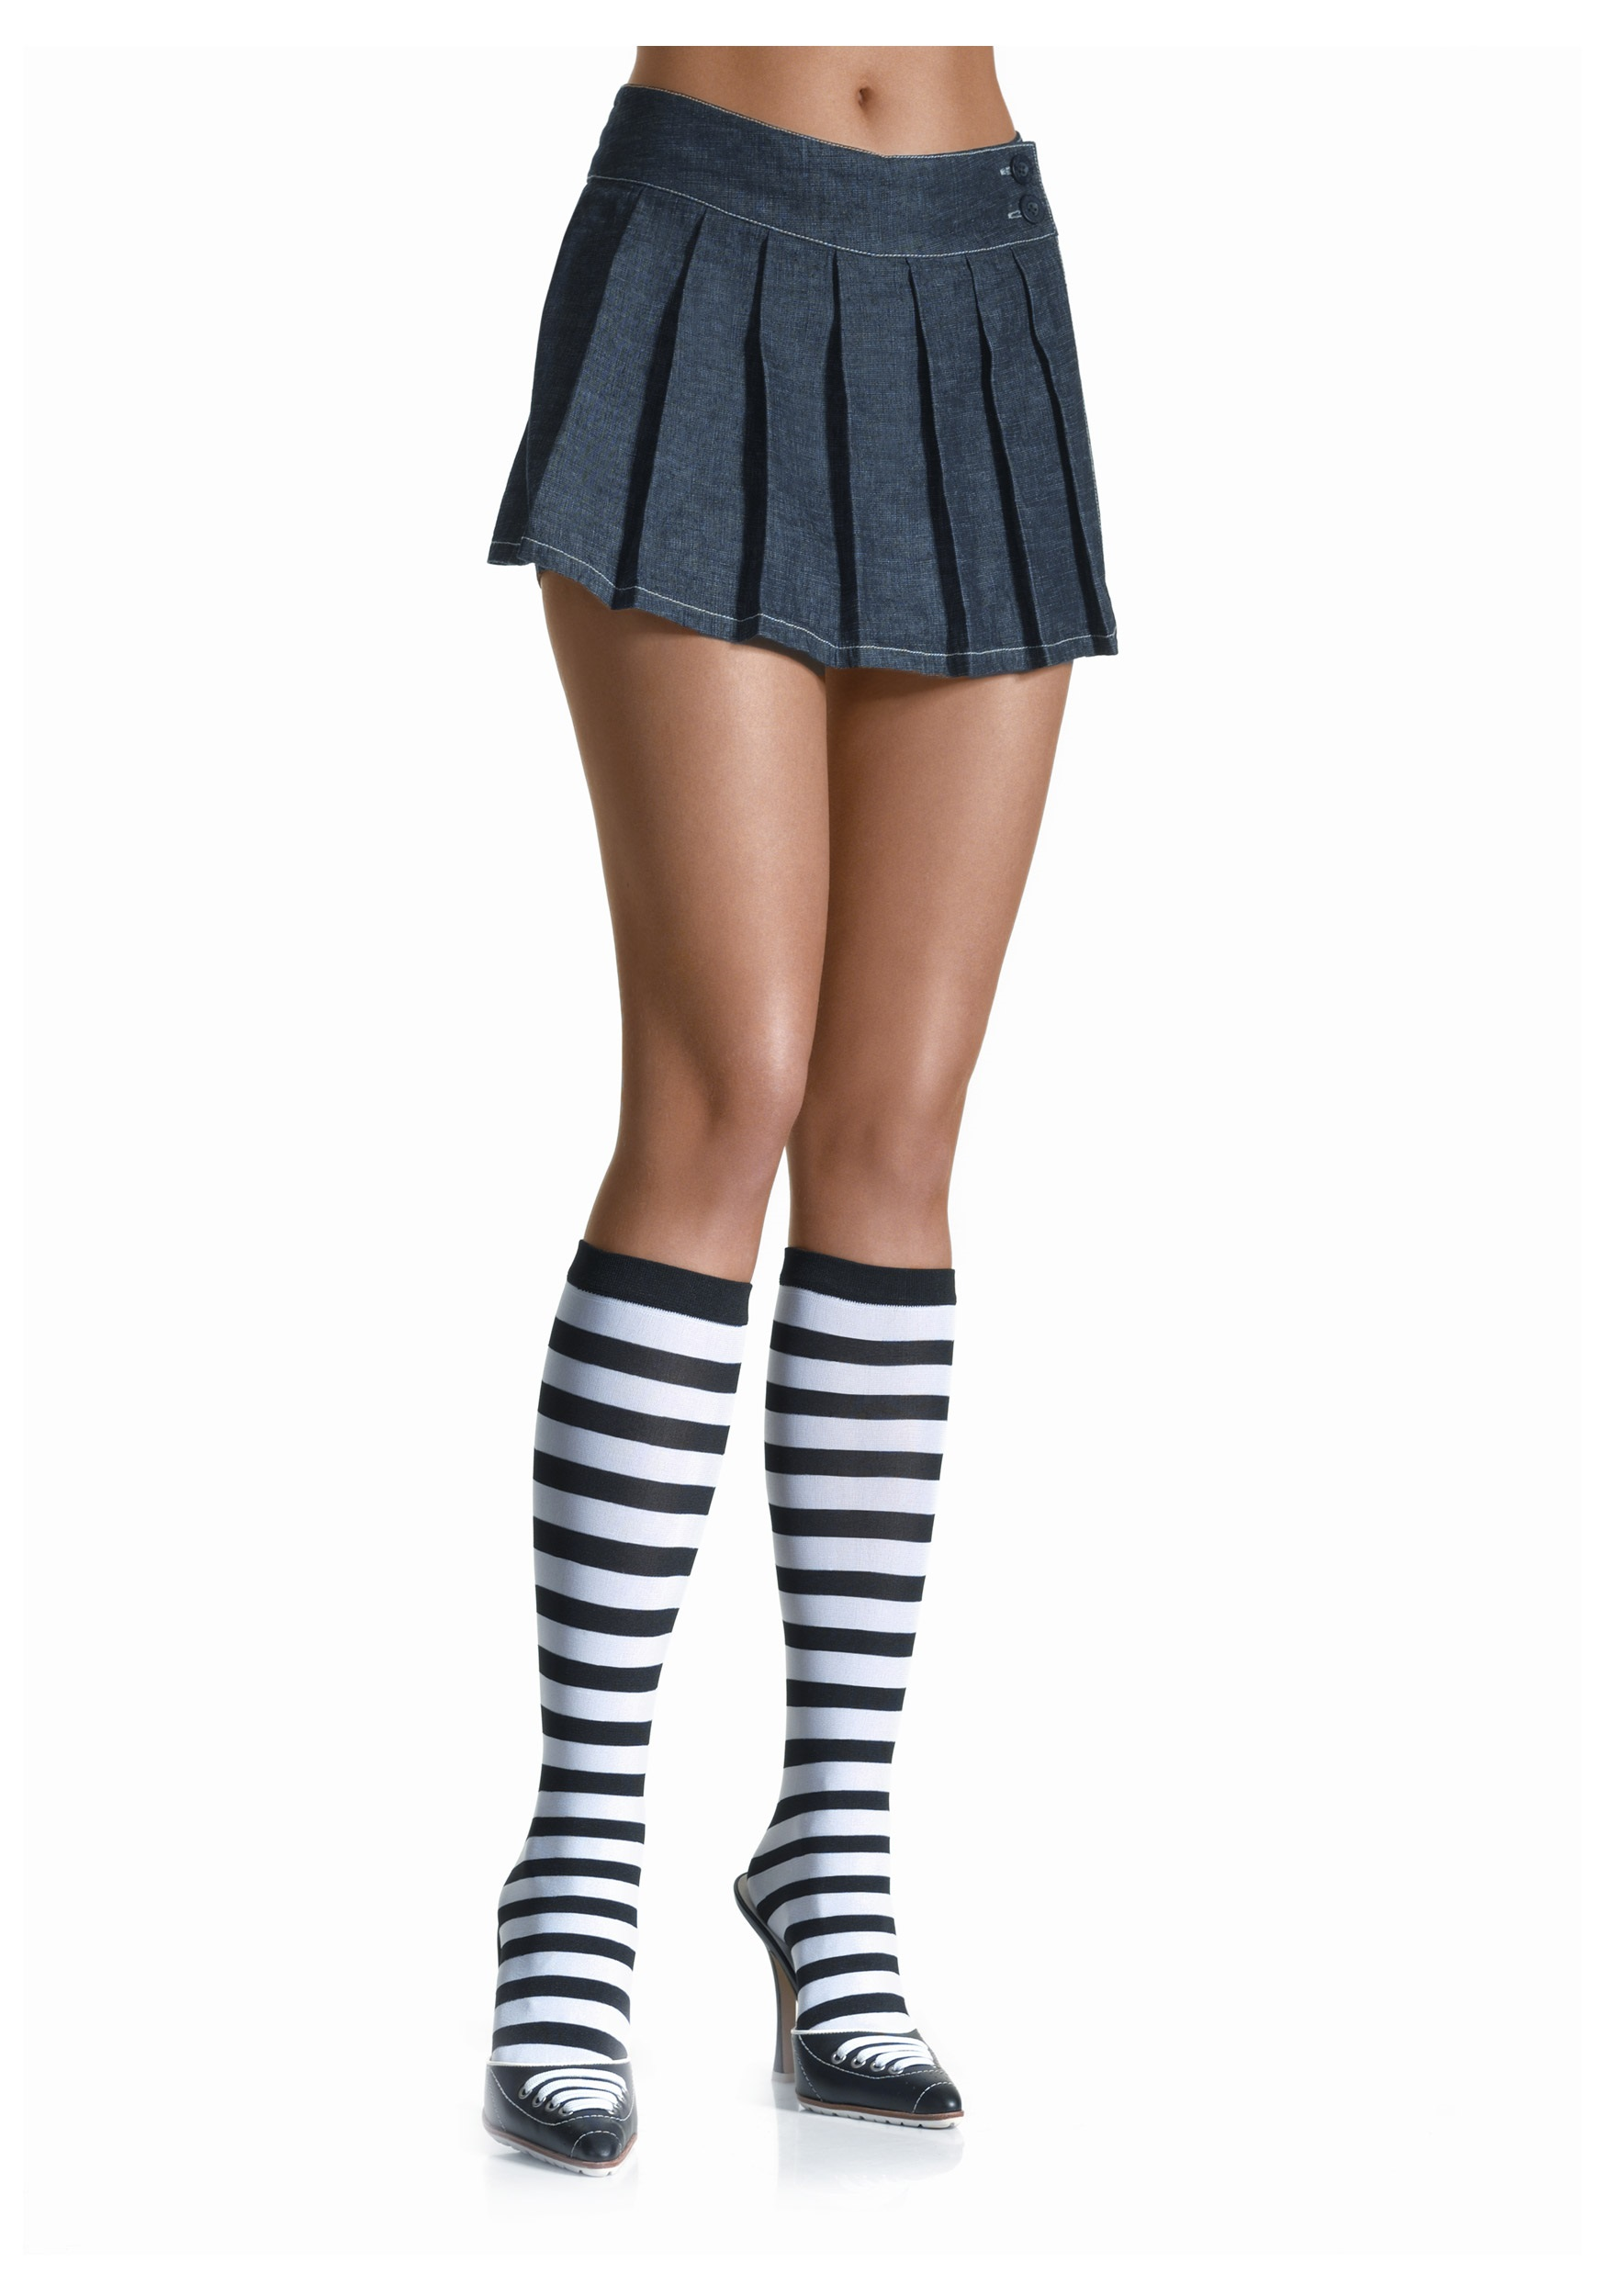 733d9b2e0e5 Black   White Women s Striped Knee High Stockings